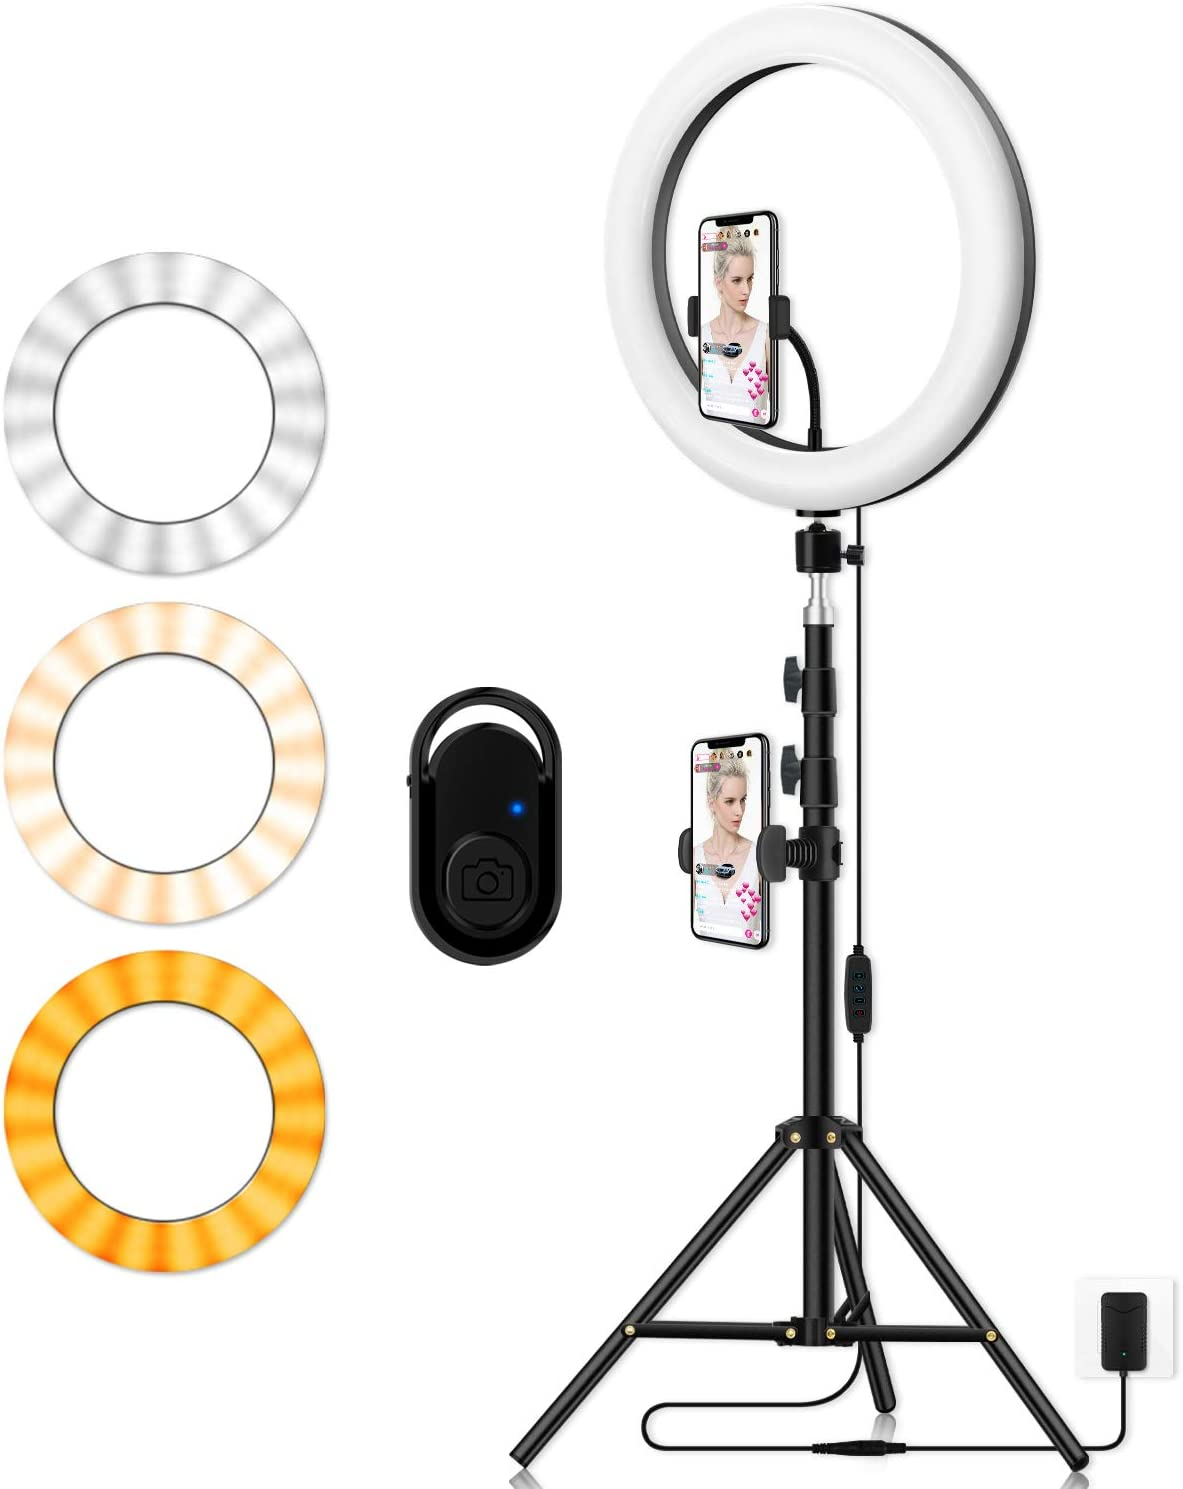 Photography Ring Light with Tripod Holder: Yingnuost 14-inch Dimmable LED Circle Lamp with Phone Holder & vlogging Camera Tripod Stand for Makeup | Streaming Live | YouTube TIK Tok Video Recording